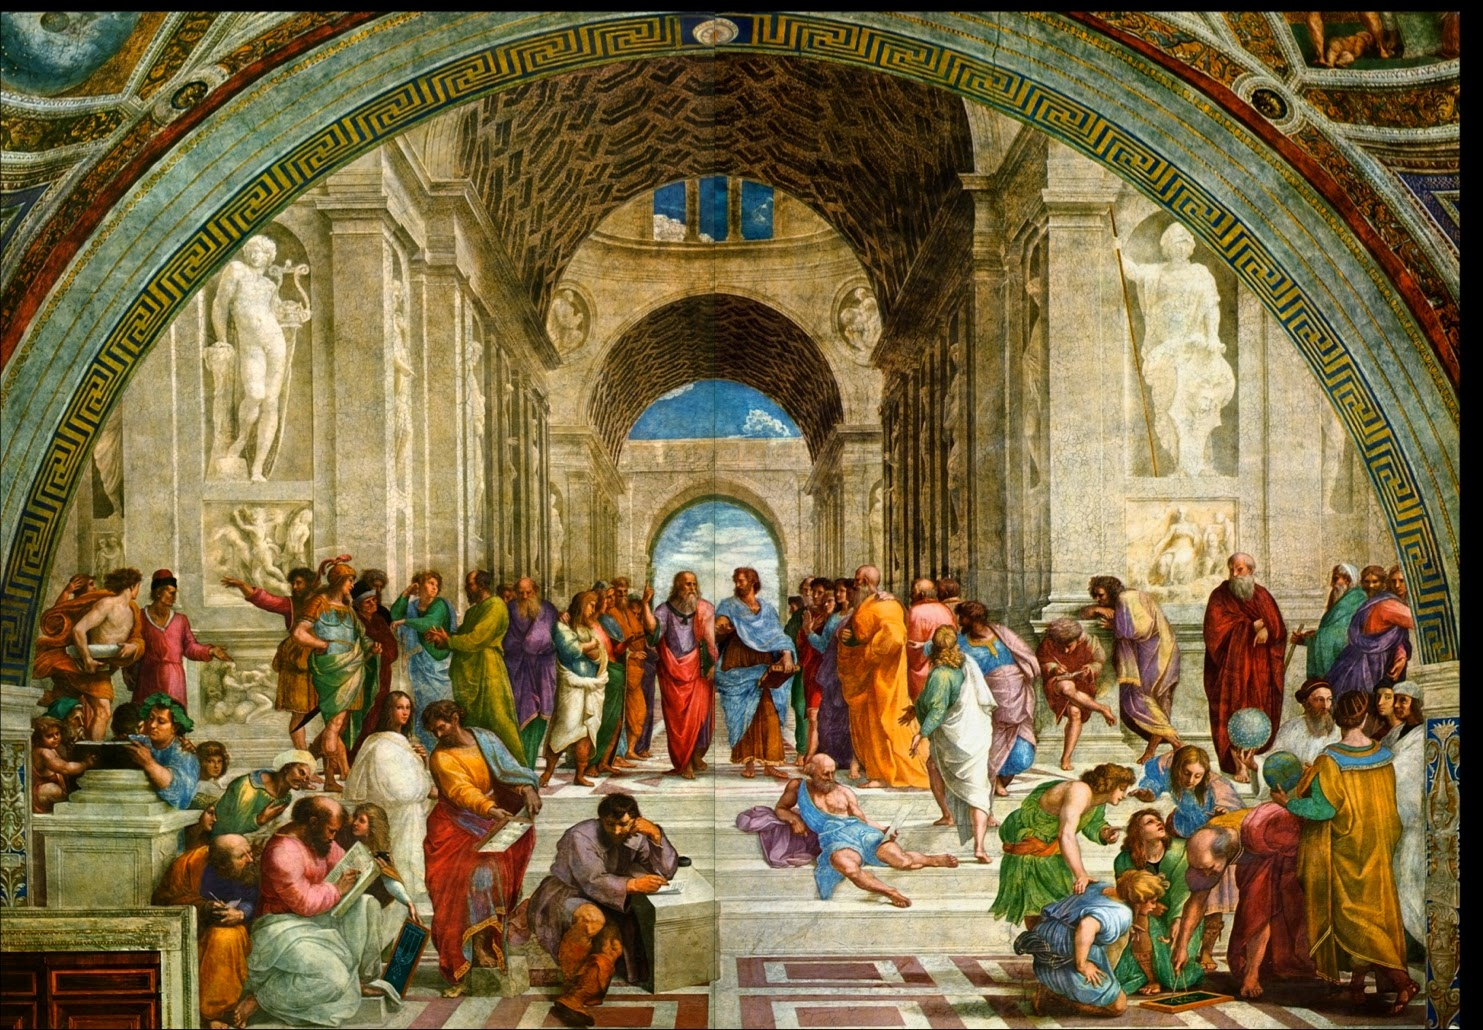 an analysis of ancient philosophers Summary and analysis chapter 2 - the economic revolution however, rather than emphasize any economic considerations, the ancient philosophers denounced economics in favor of basic questions about truth, good, evil, god, and life.